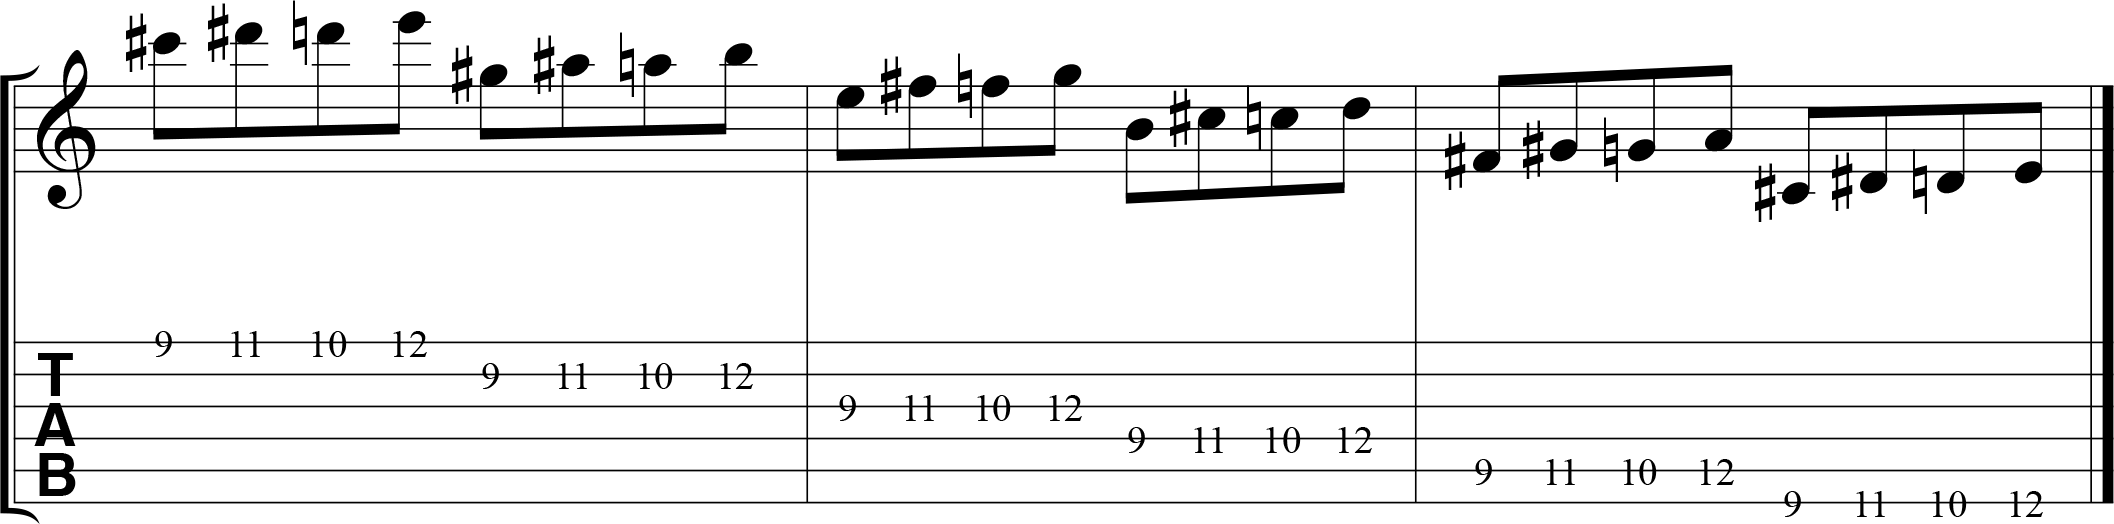 Chromatic alternate picking exercise for guitar, 1324, descending.